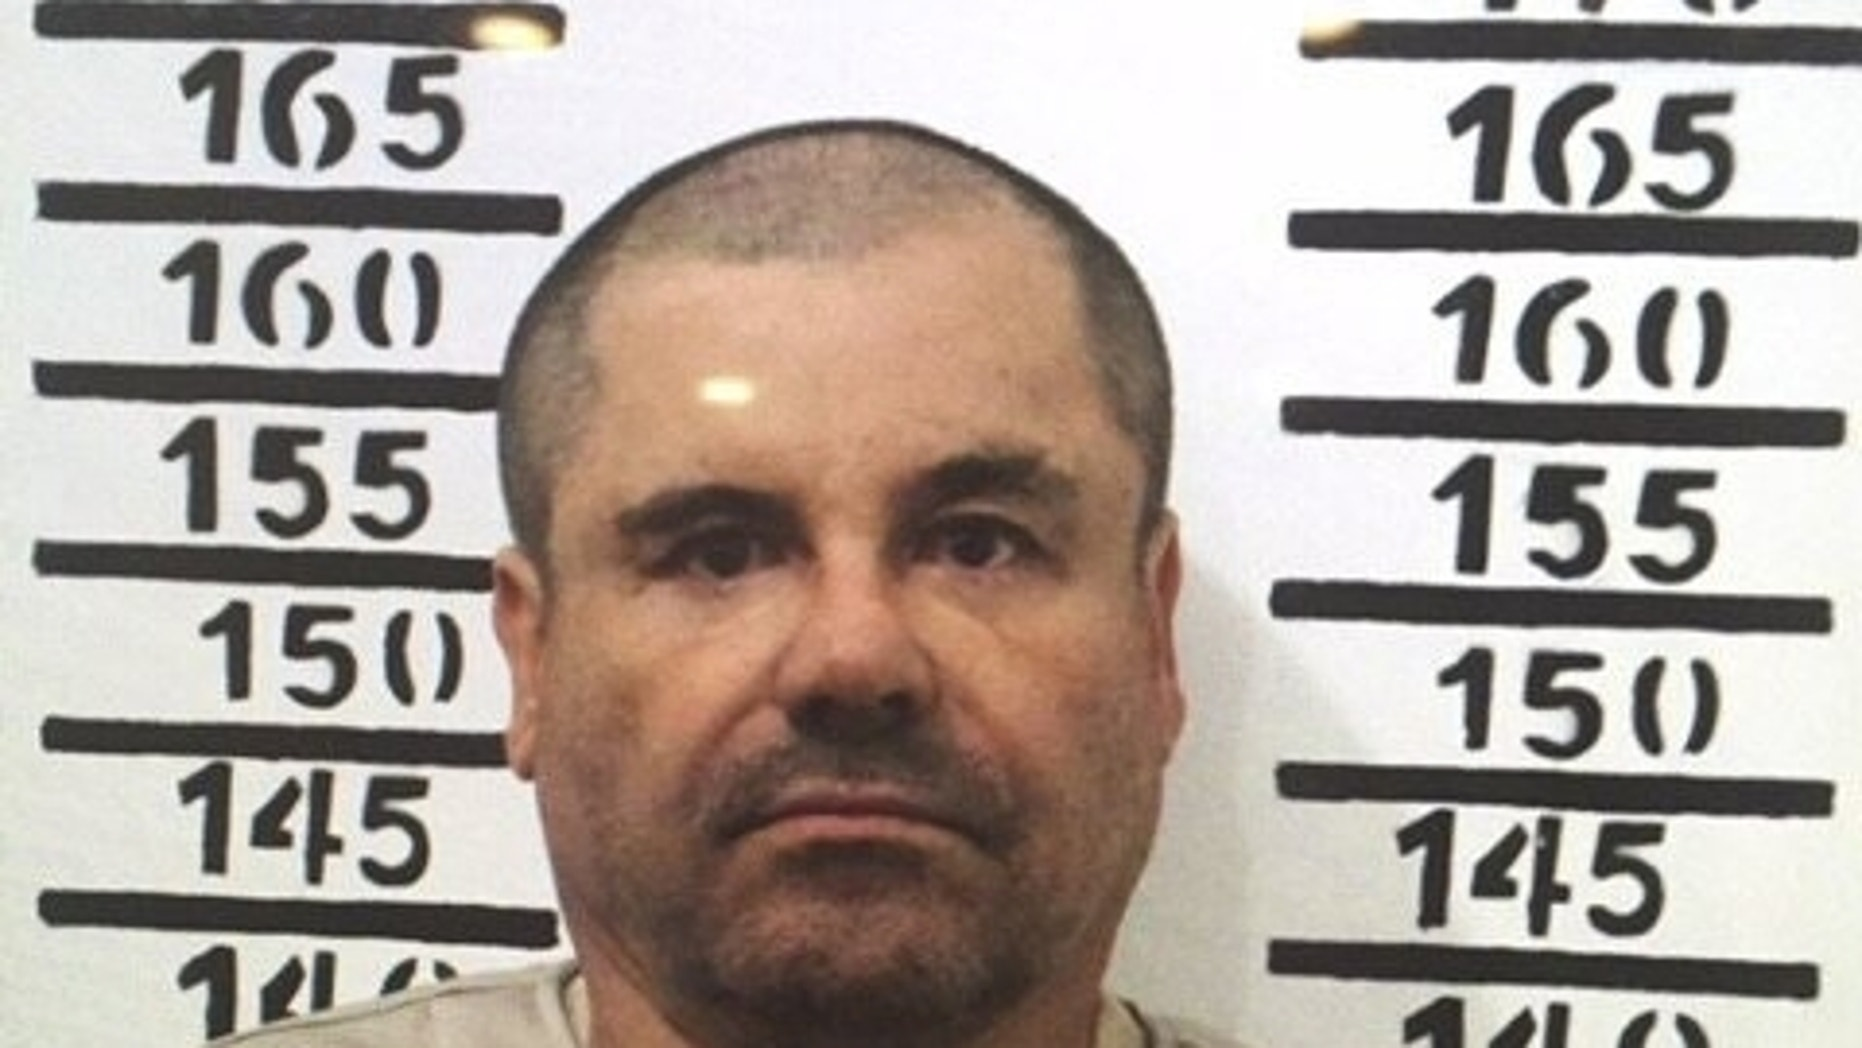 """FILE - In this Jan. 8, 2016 file photo released by Mexico's federal government, Mexico's drug lord Joaquin """"El Chapo"""" Guzman stands for his prison mug shot with the inmate number 3870 at the Altiplano maximum security federal prison in Almoloya, Mexico. According to Mexico's Foreign Ministry, Guzman was extradited to the United States on Thursday, Jan. 19 2017. (Mexico's federal government via AP, File)"""